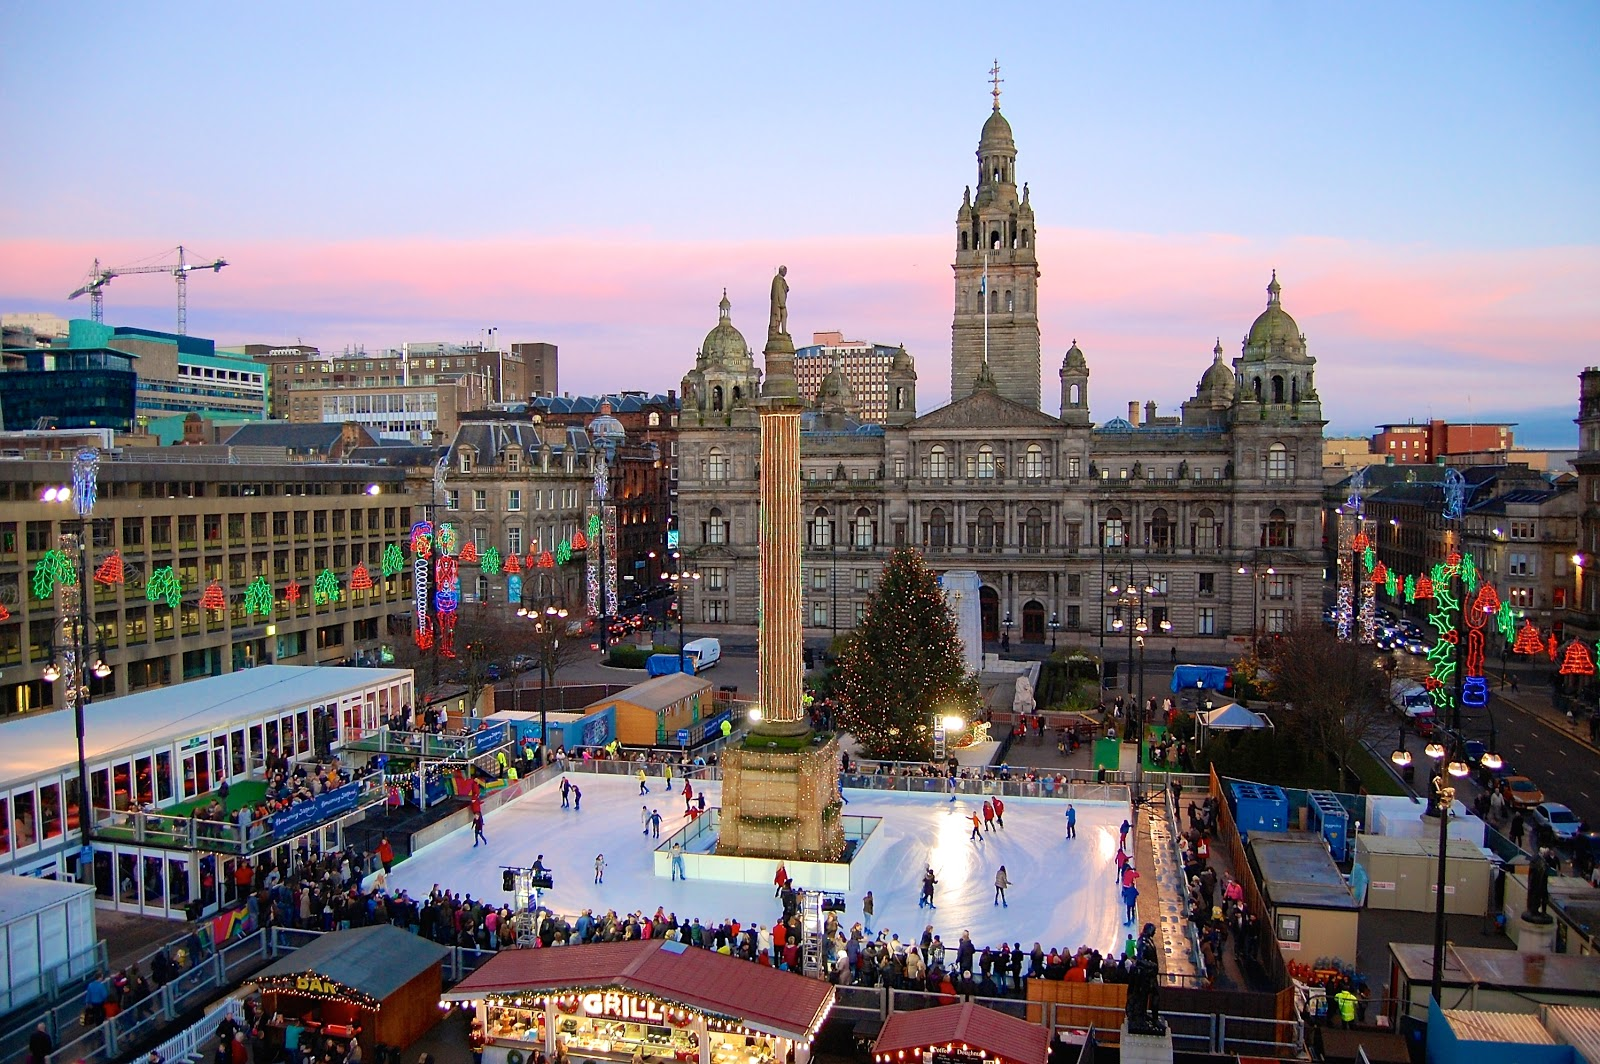 Winter festivities in St. George's Square in Glasgow, Scotland